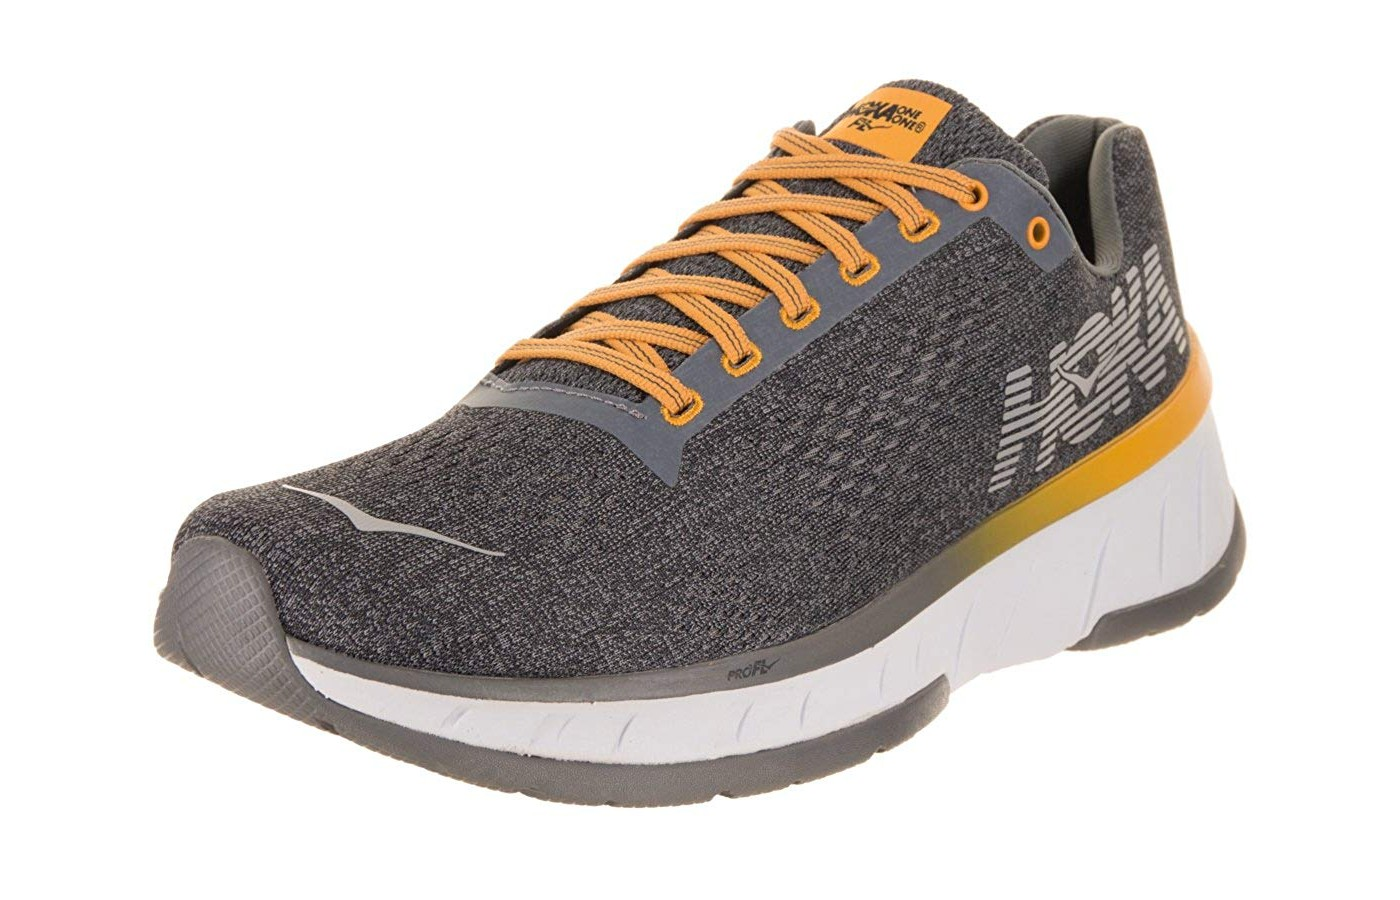 2d688f5c16 Hoka One One Cavu 2 Reviewed & Rated in 2019 | WalkJogRun